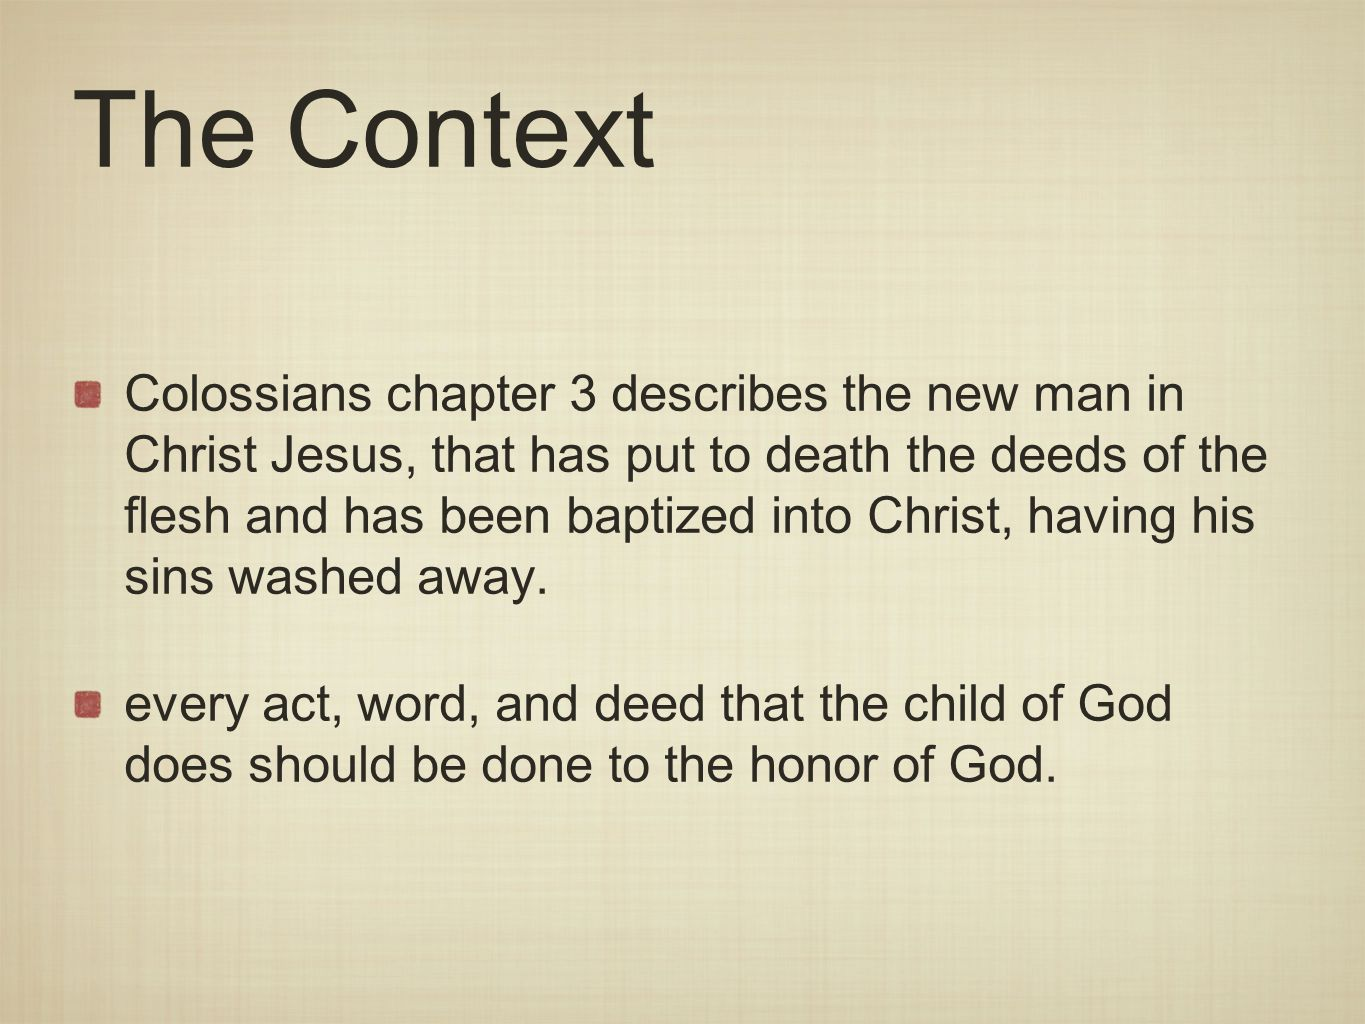 The Context Colossians chapter 3 describes the new man in Christ Jesus, that has put to death the deeds of the flesh and has been baptized into Christ